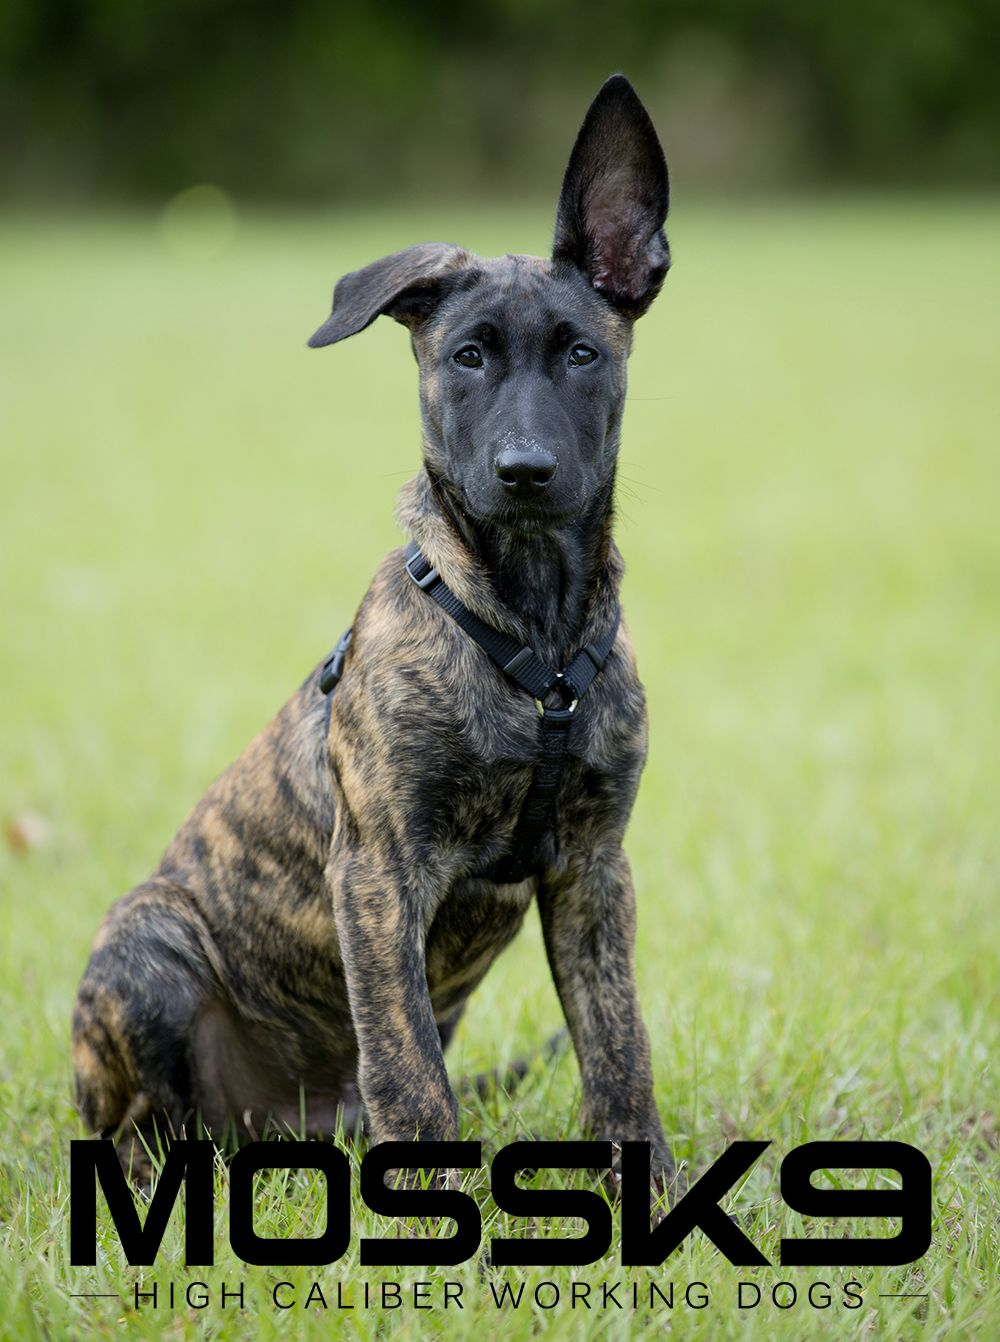 Knpv Dutch Shepherd Belgian Malinois Working Dog Puppy Moss K9 Cute Baby Animal Puppy Working Dogs Belgian Sheepdog Belgian Malinois